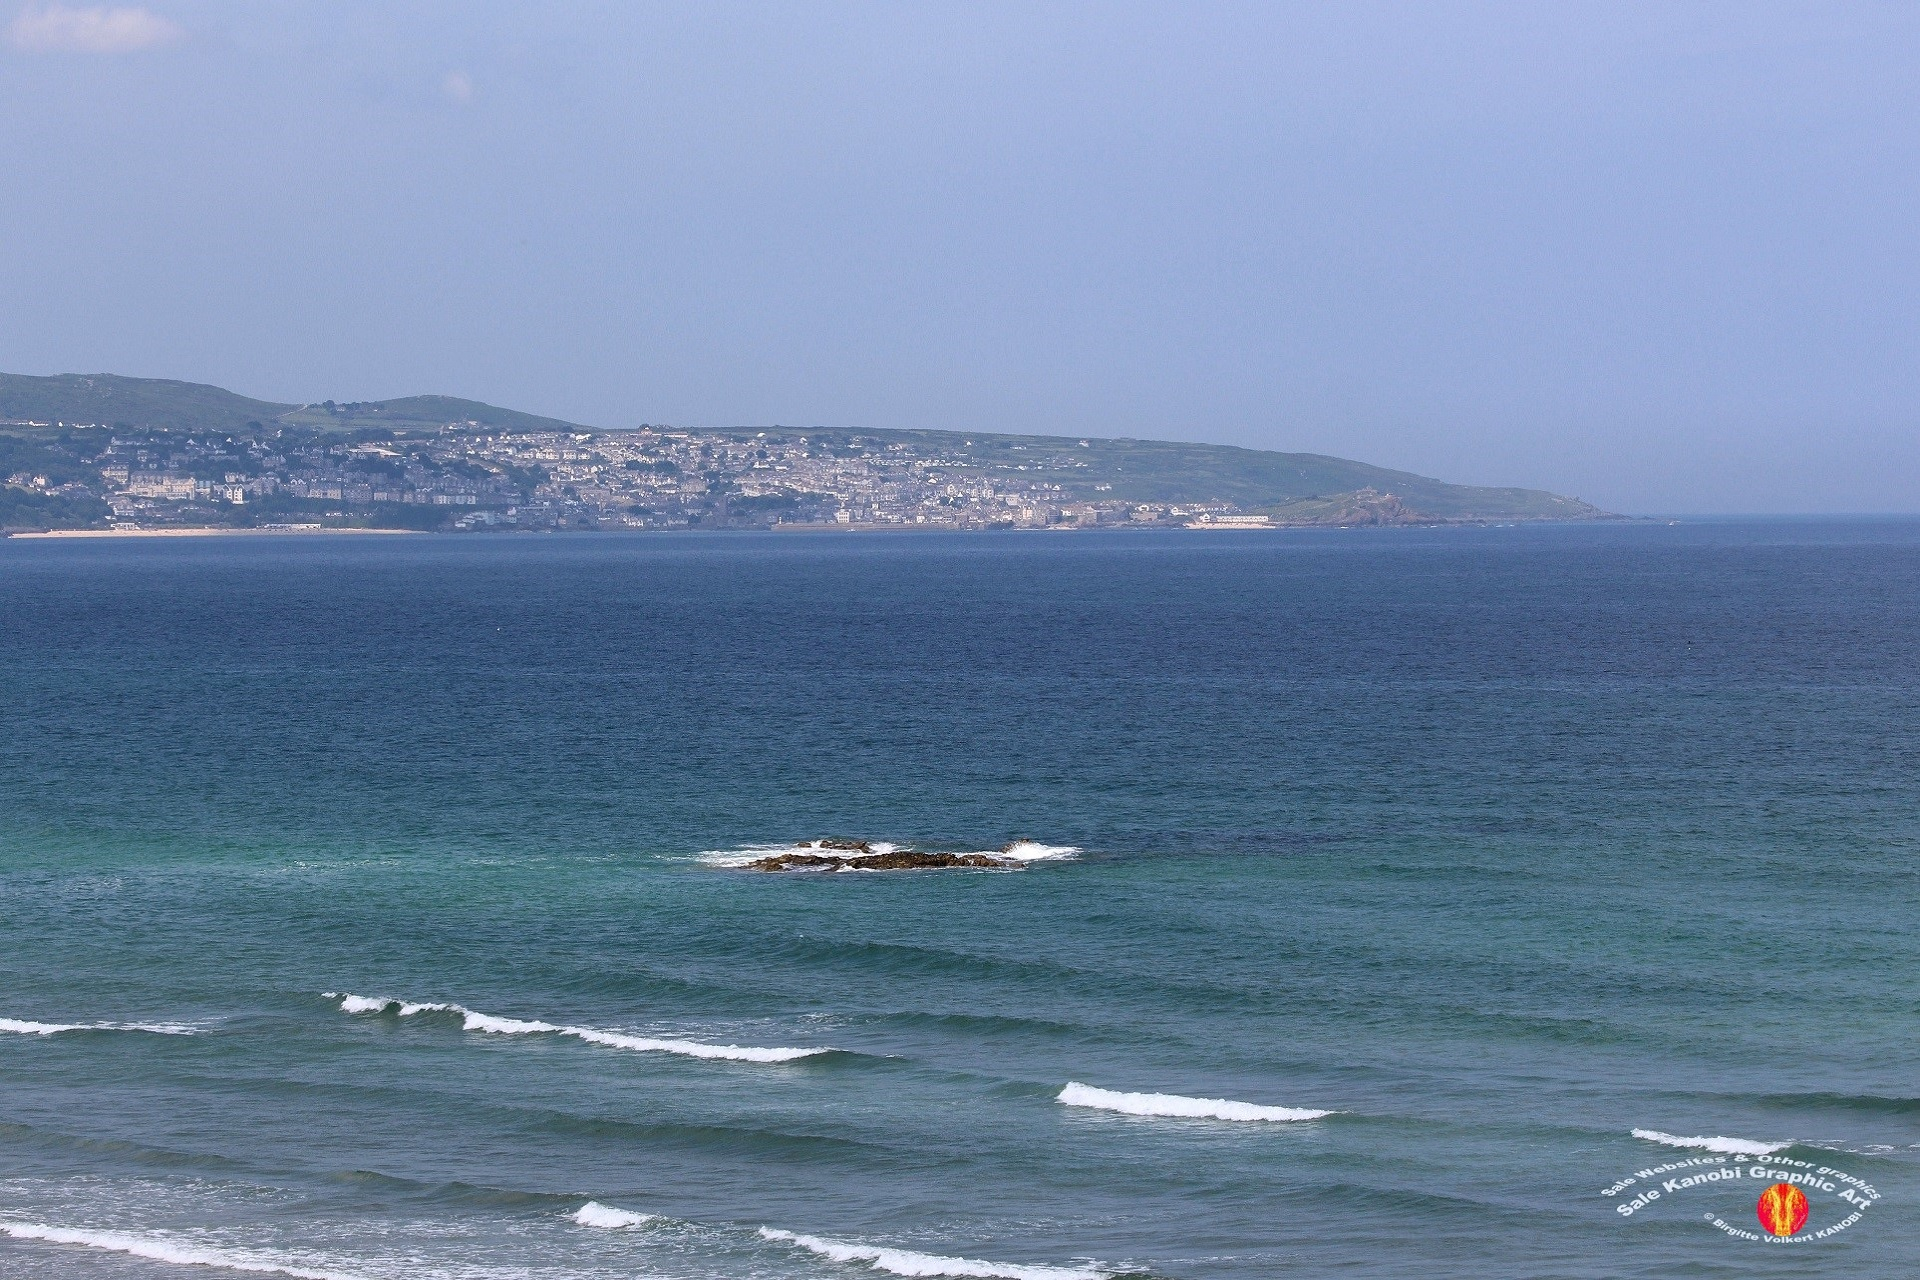 East of St. Ives